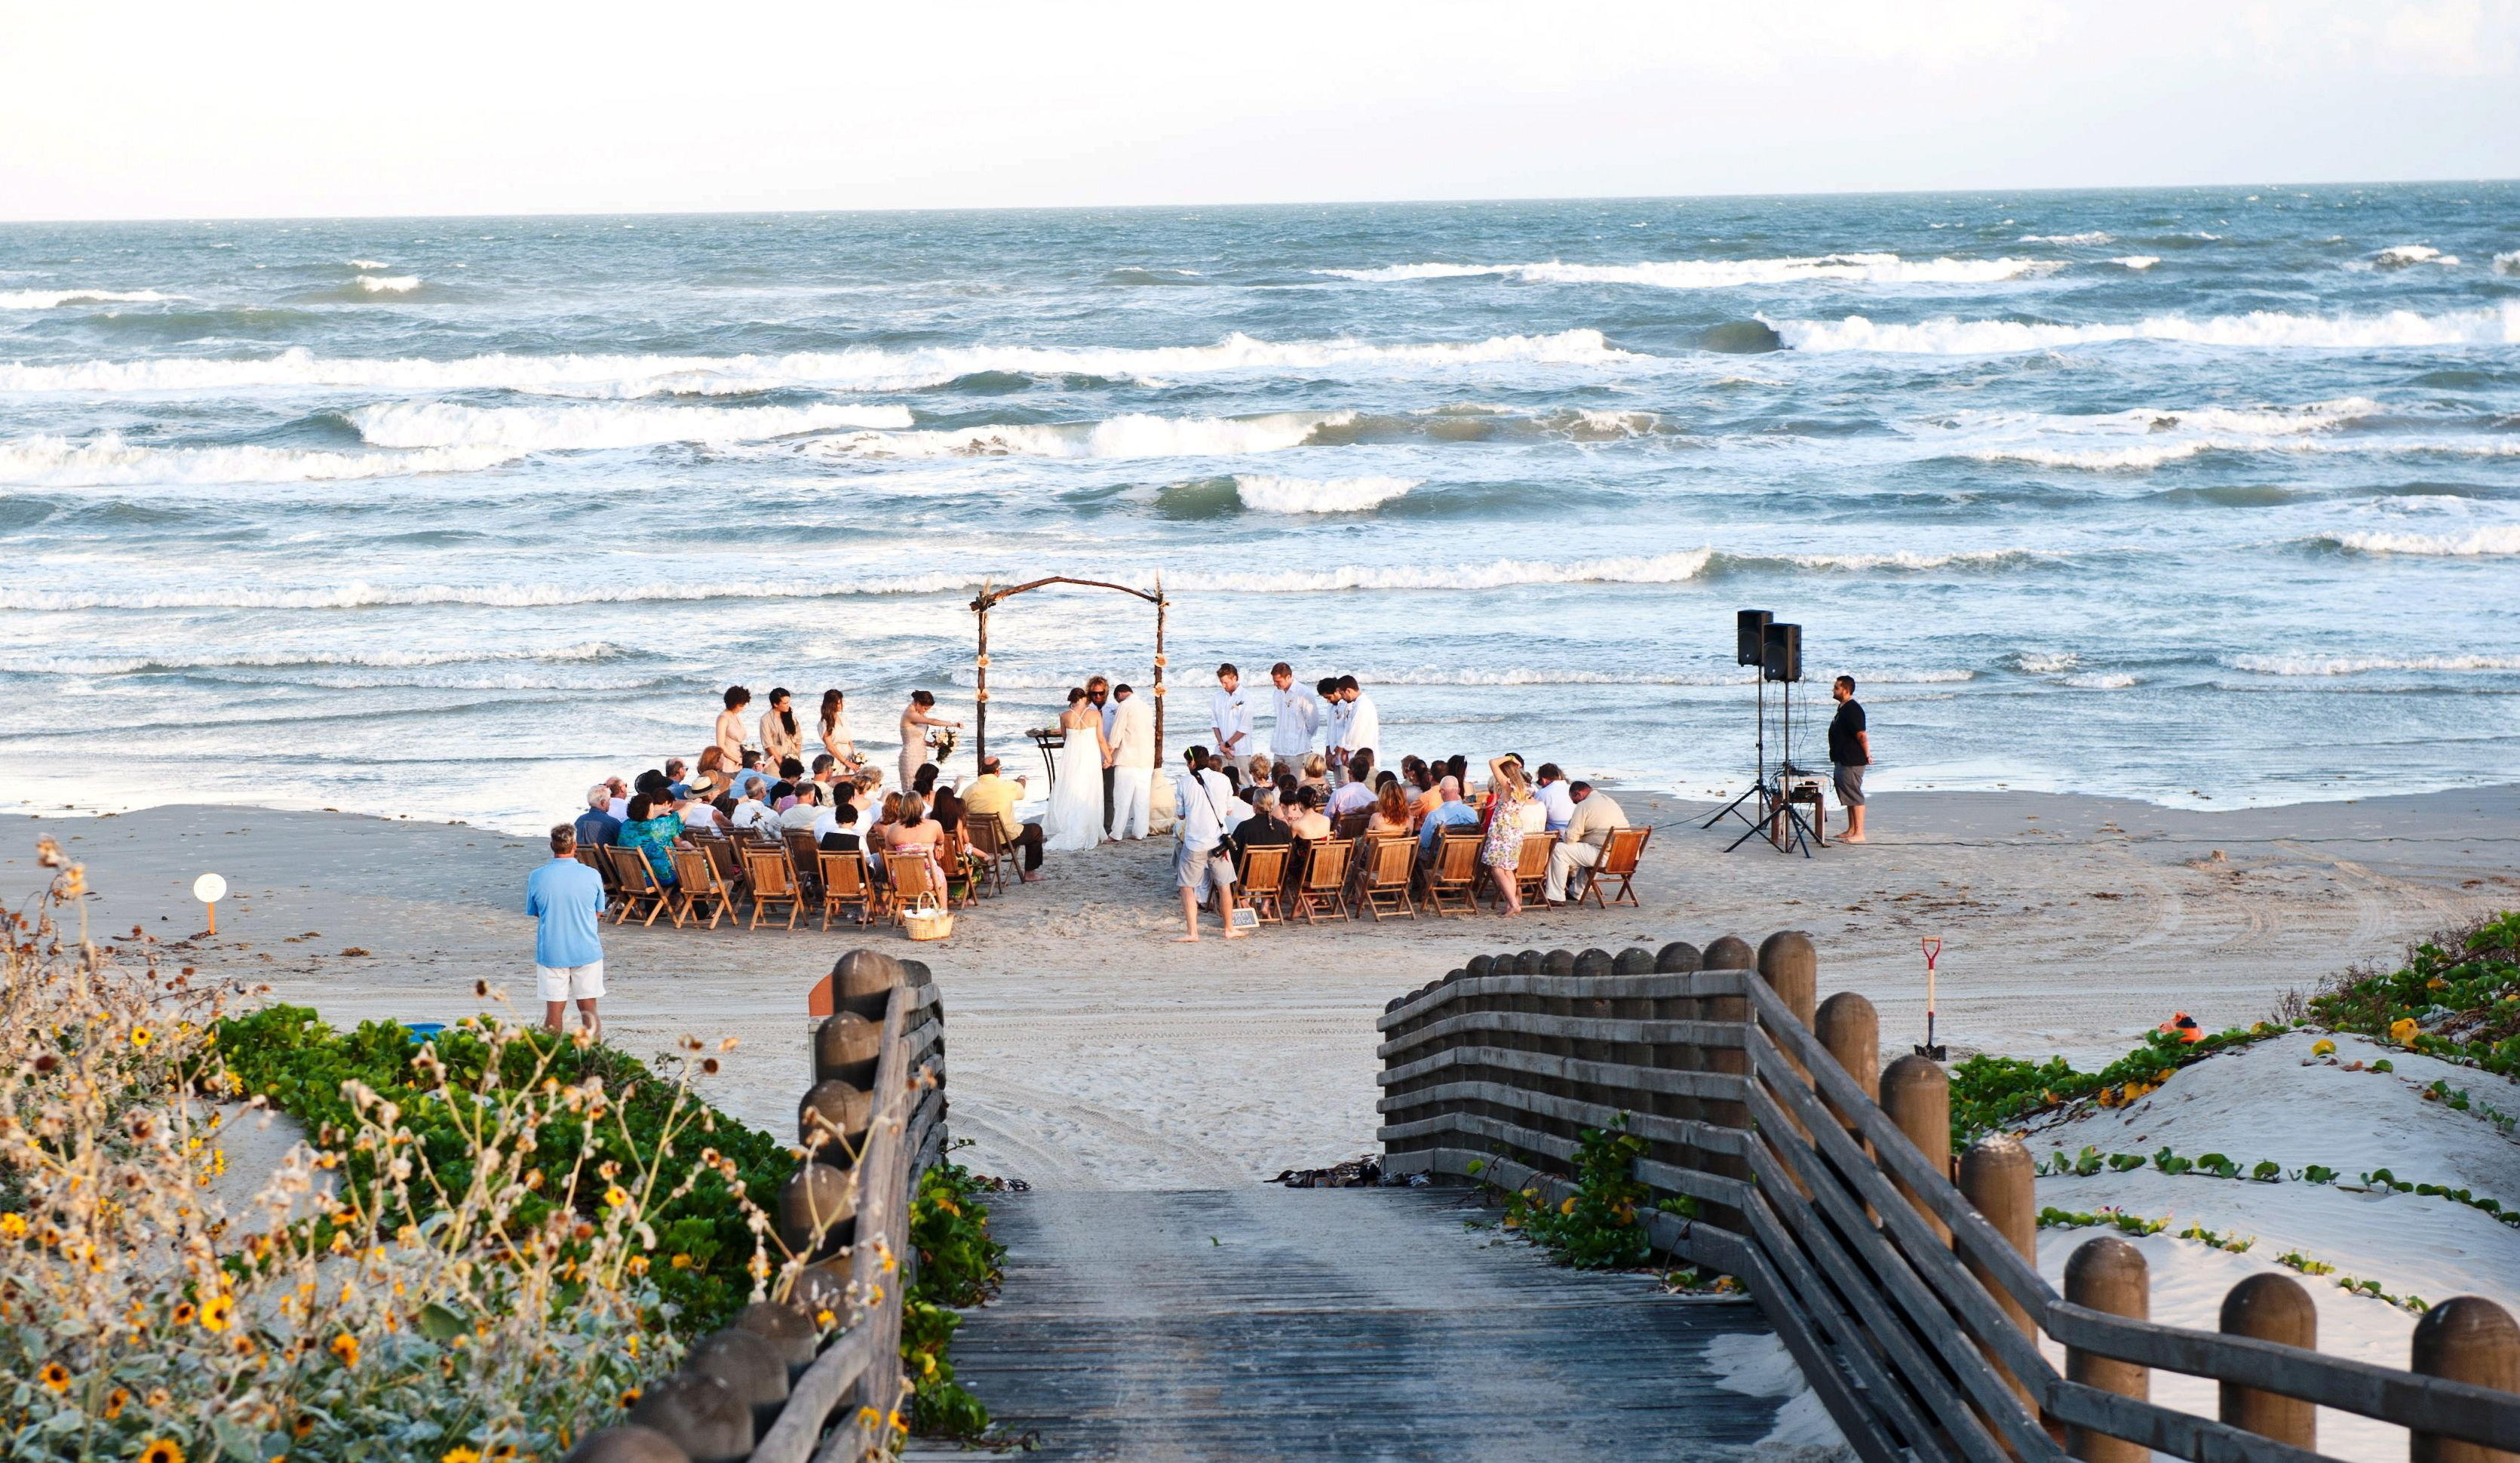 Beach wedding in texas  Beach weddings rising in popularity along Texas Gulf Coast  Beach